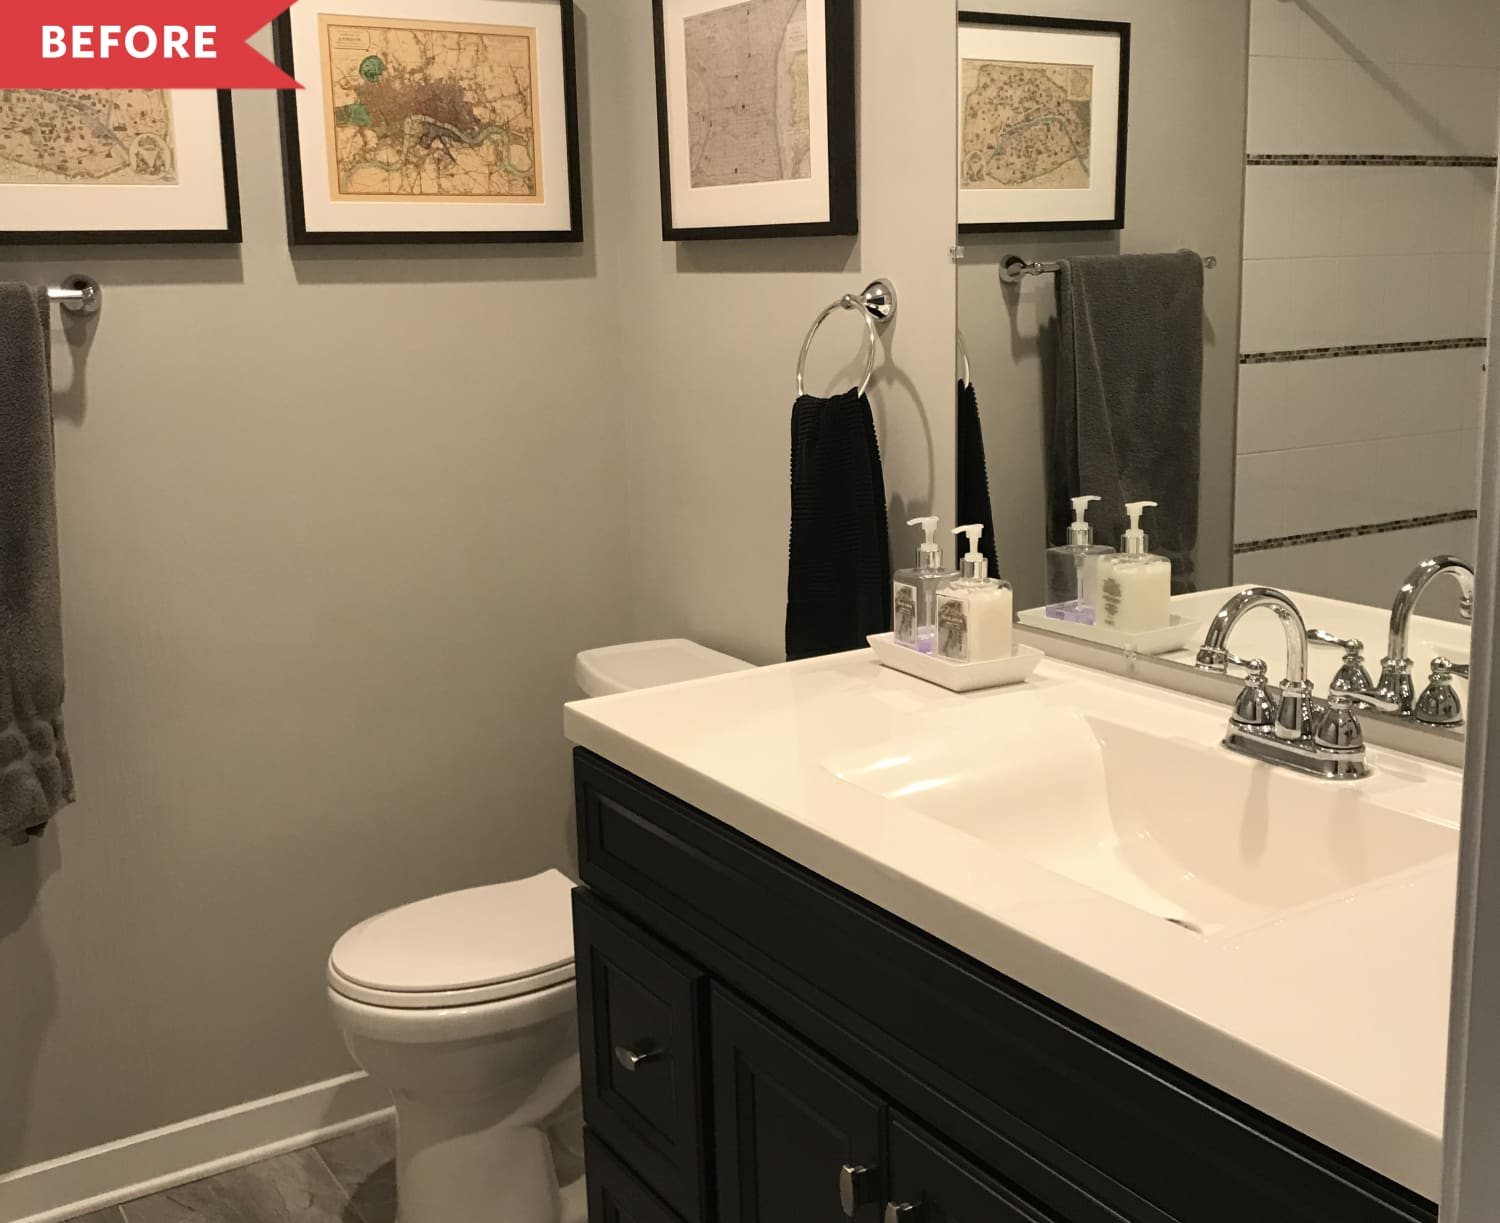 Before and After: $300, 5 Paint Colors, and 2 Weeks Help a Plain Bathroom Pop